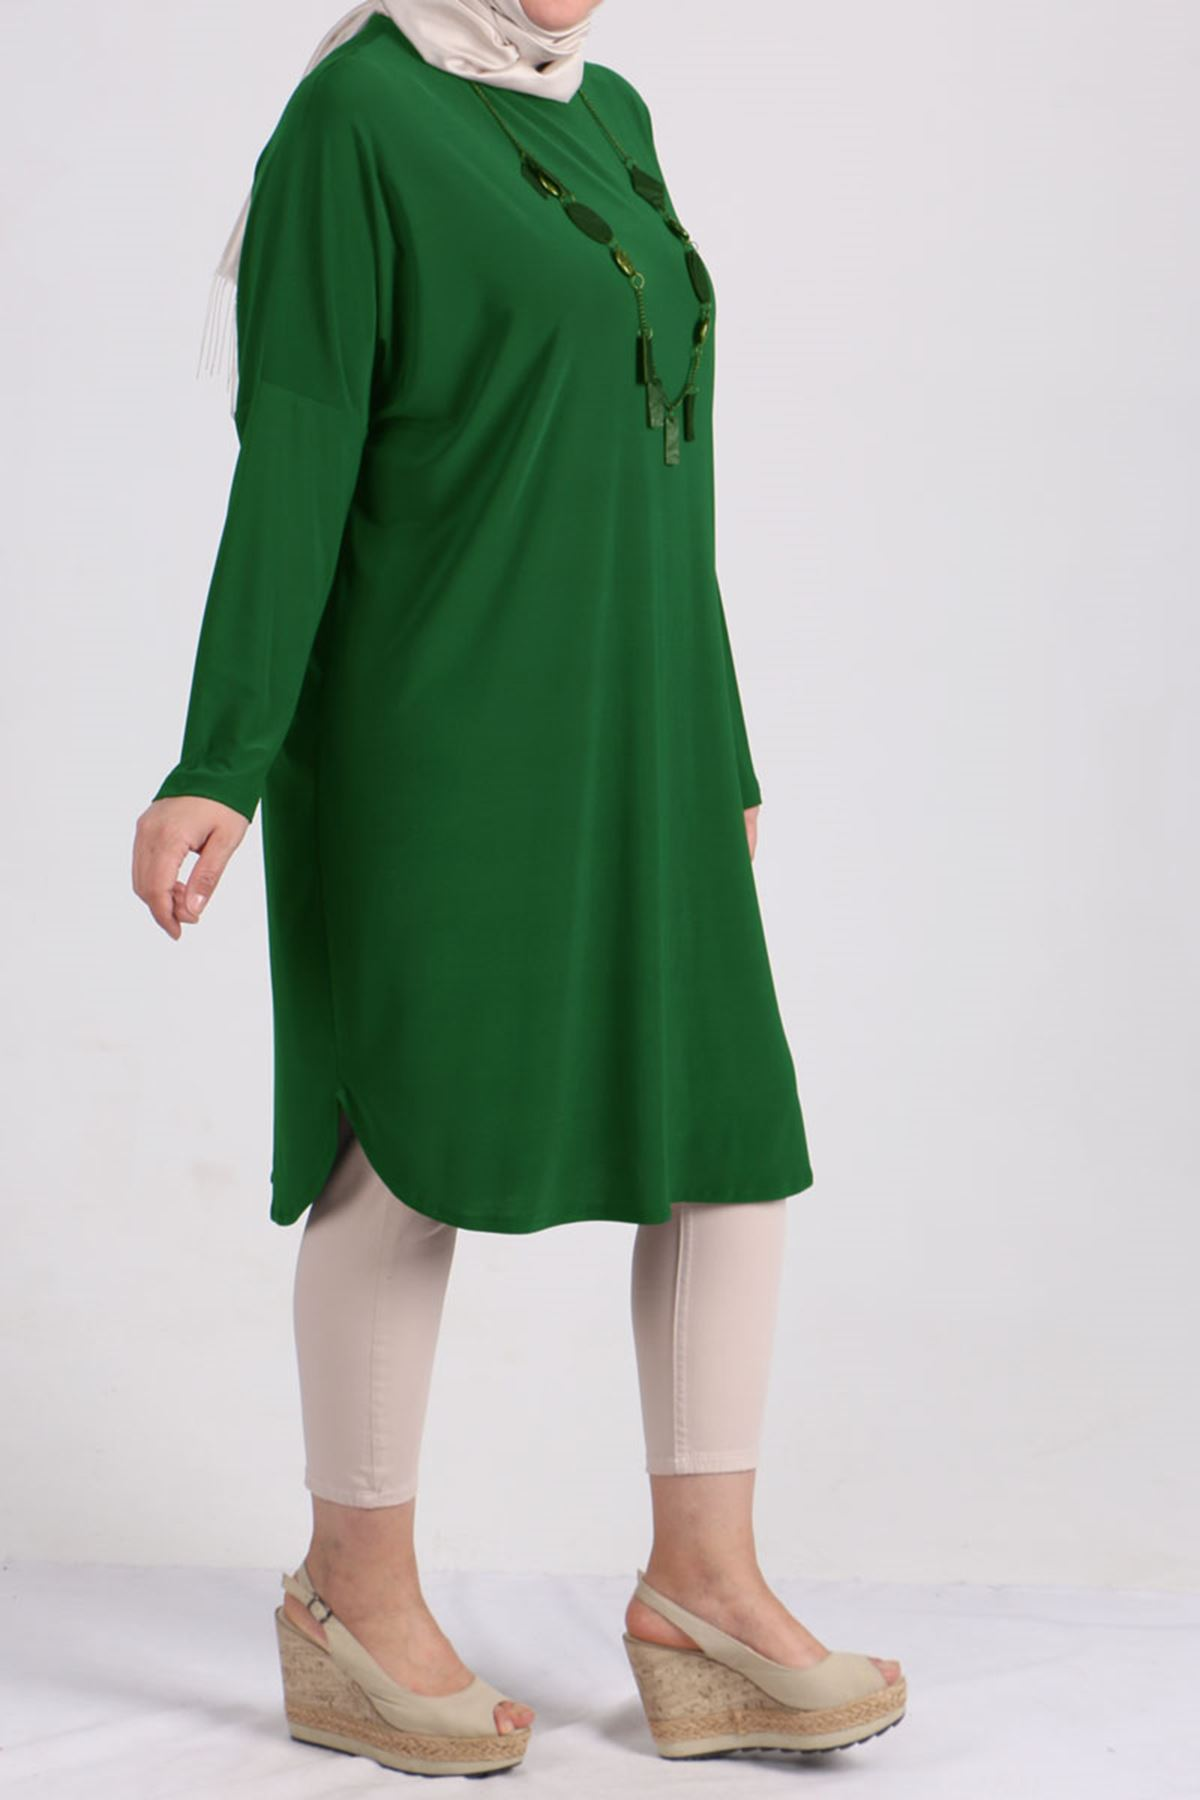 8459 Oversize with Low Sleeve Tunic - Emerald Green